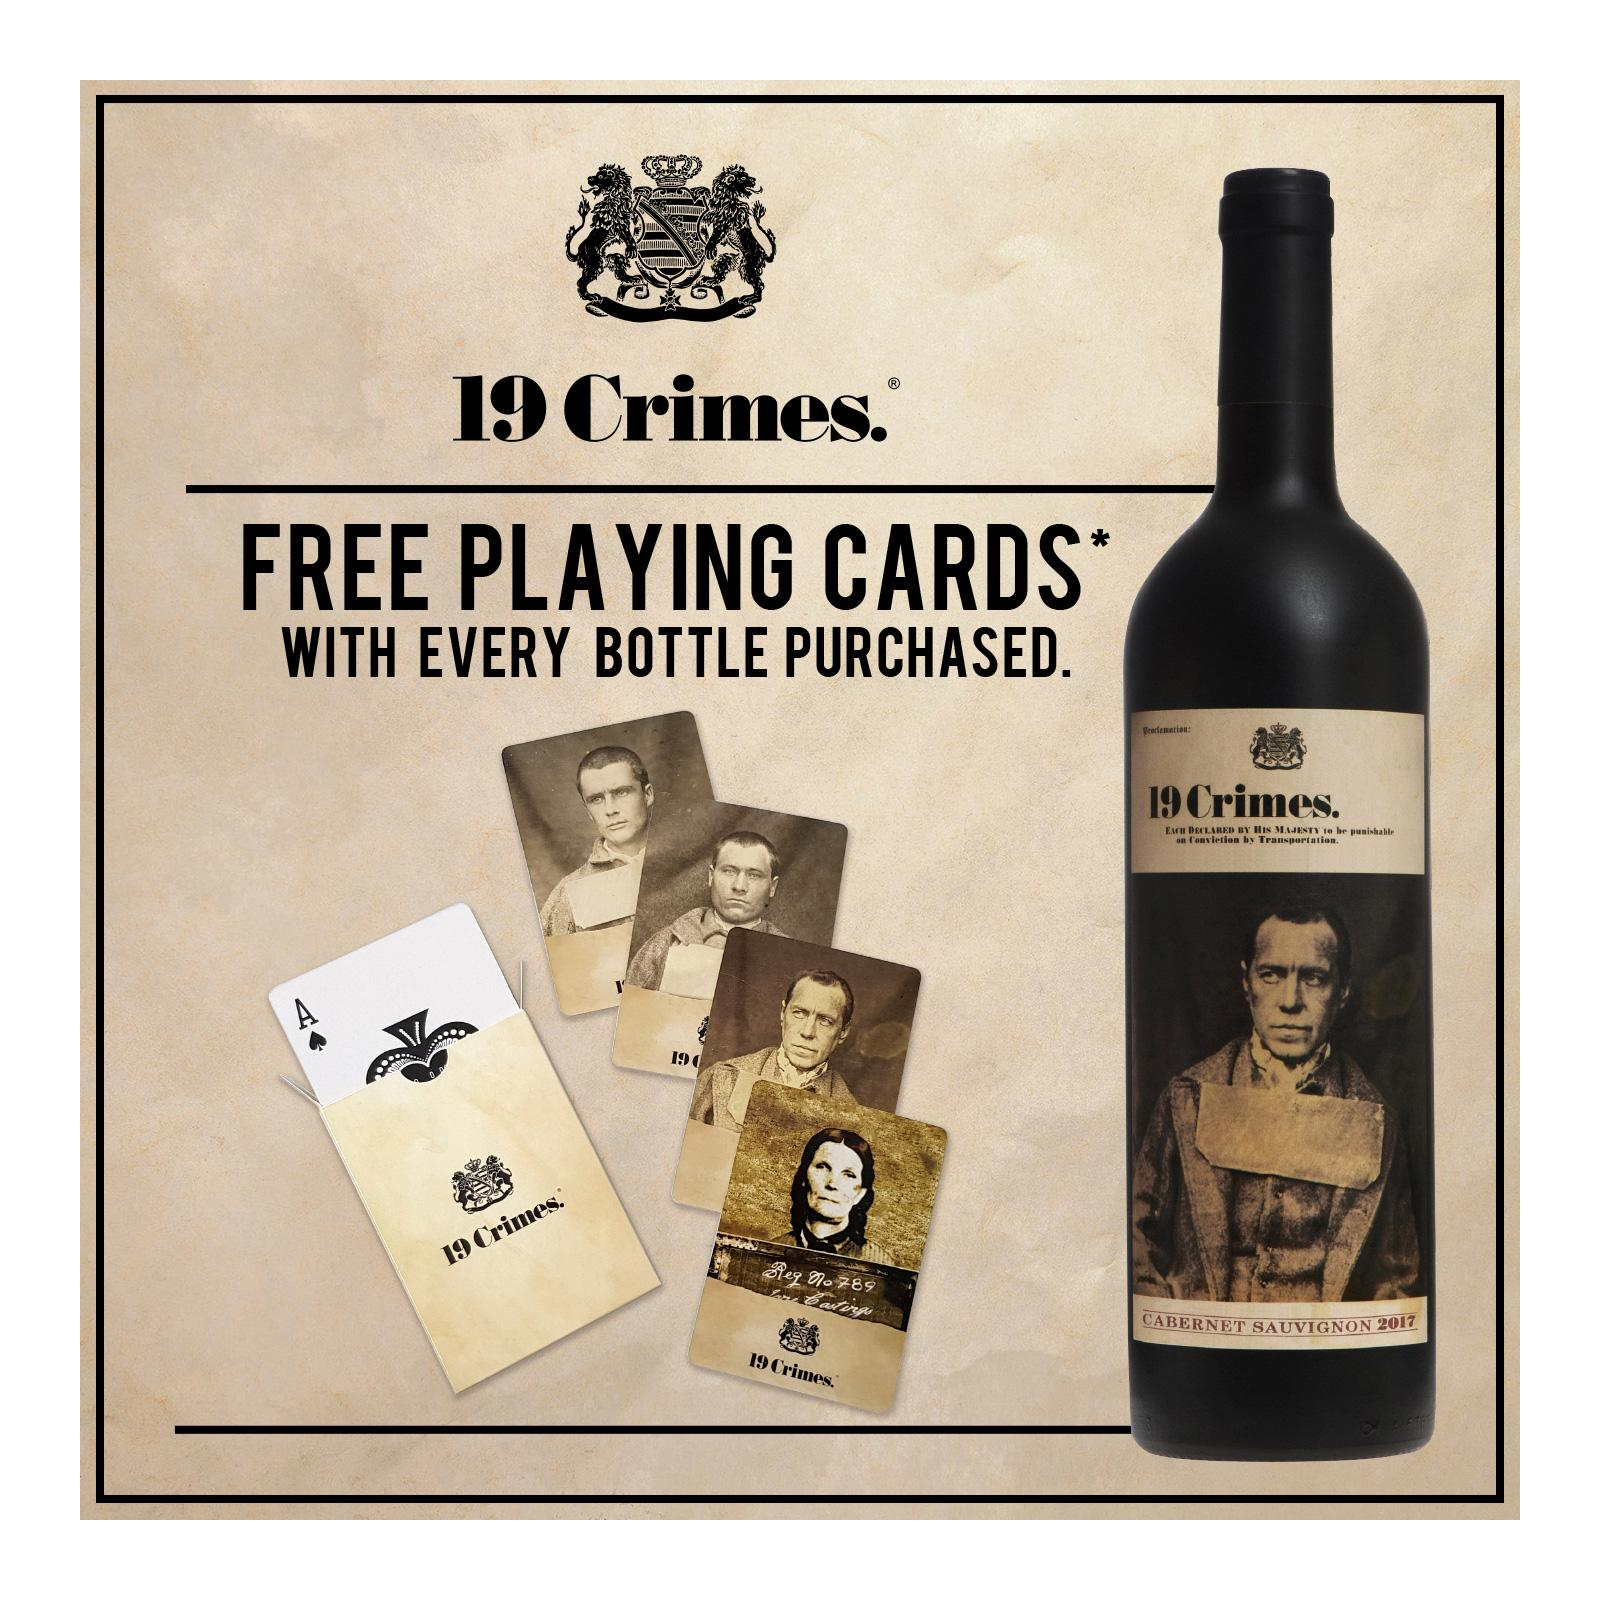 19 Crimes Cabernet Sauvignon Smooth Red Wine with Free Playing Cards*